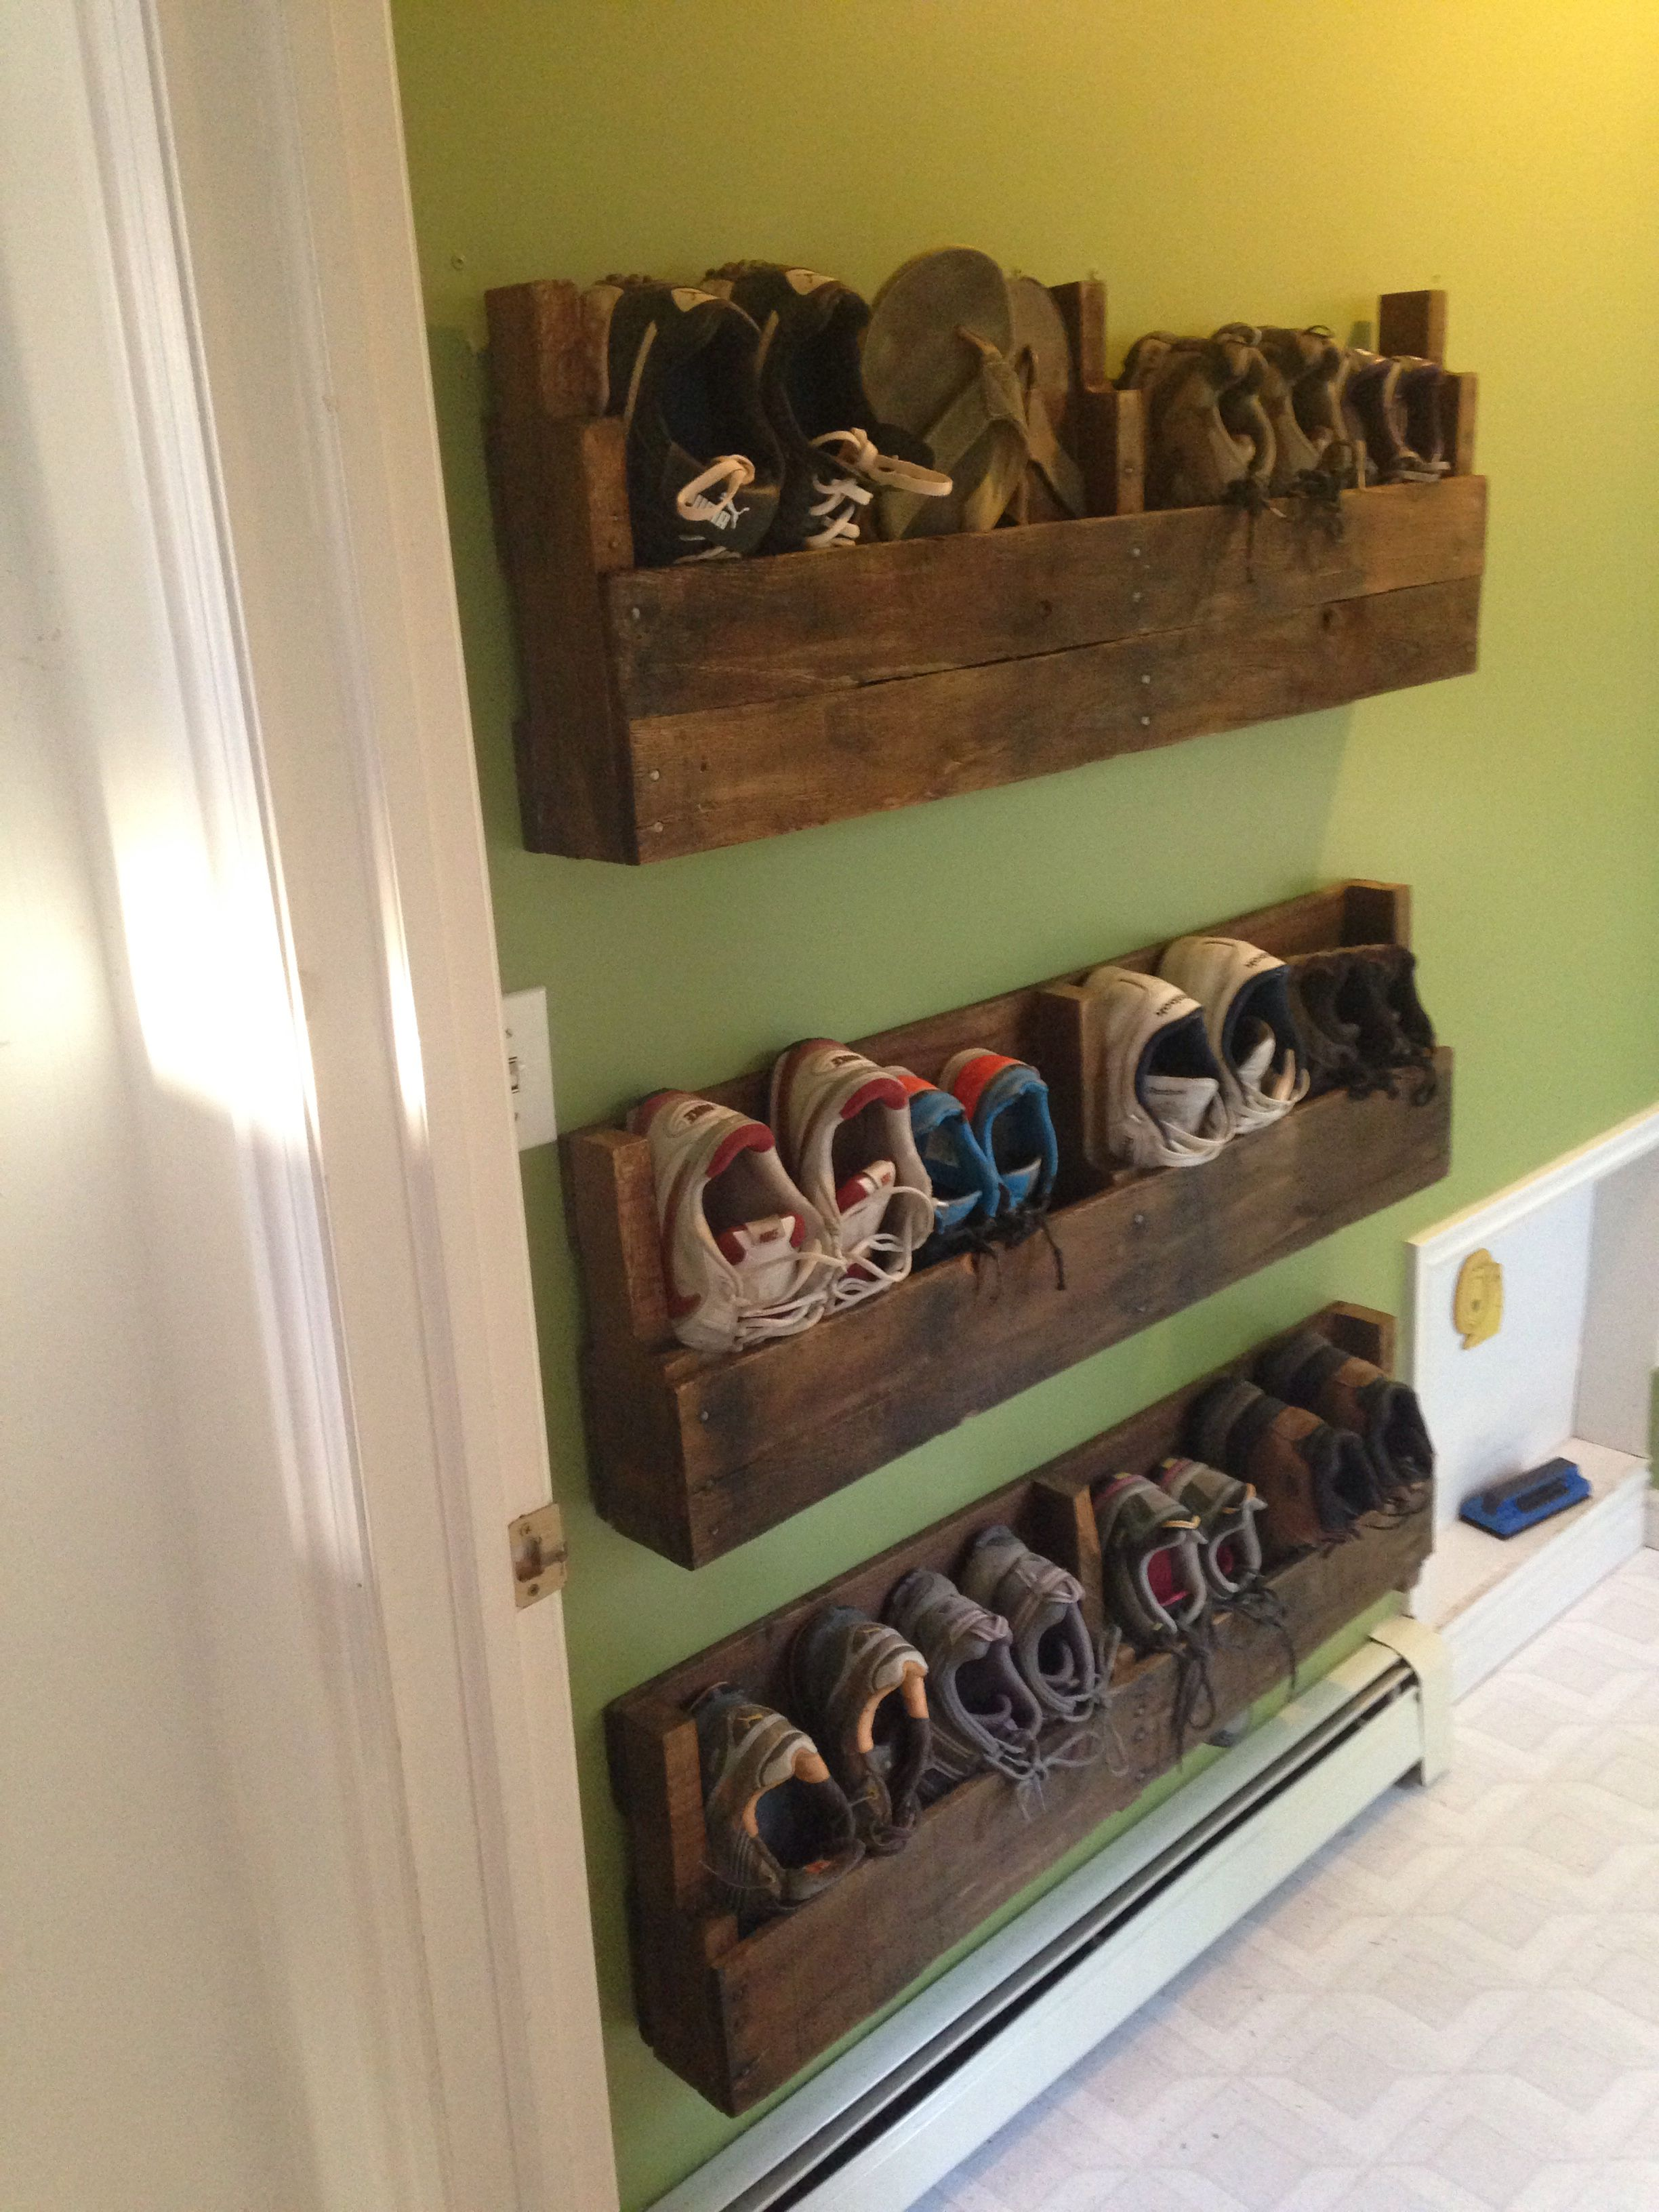 Dyi Shoe Rack Made Out Of Pallets Project I Have Been Trying To